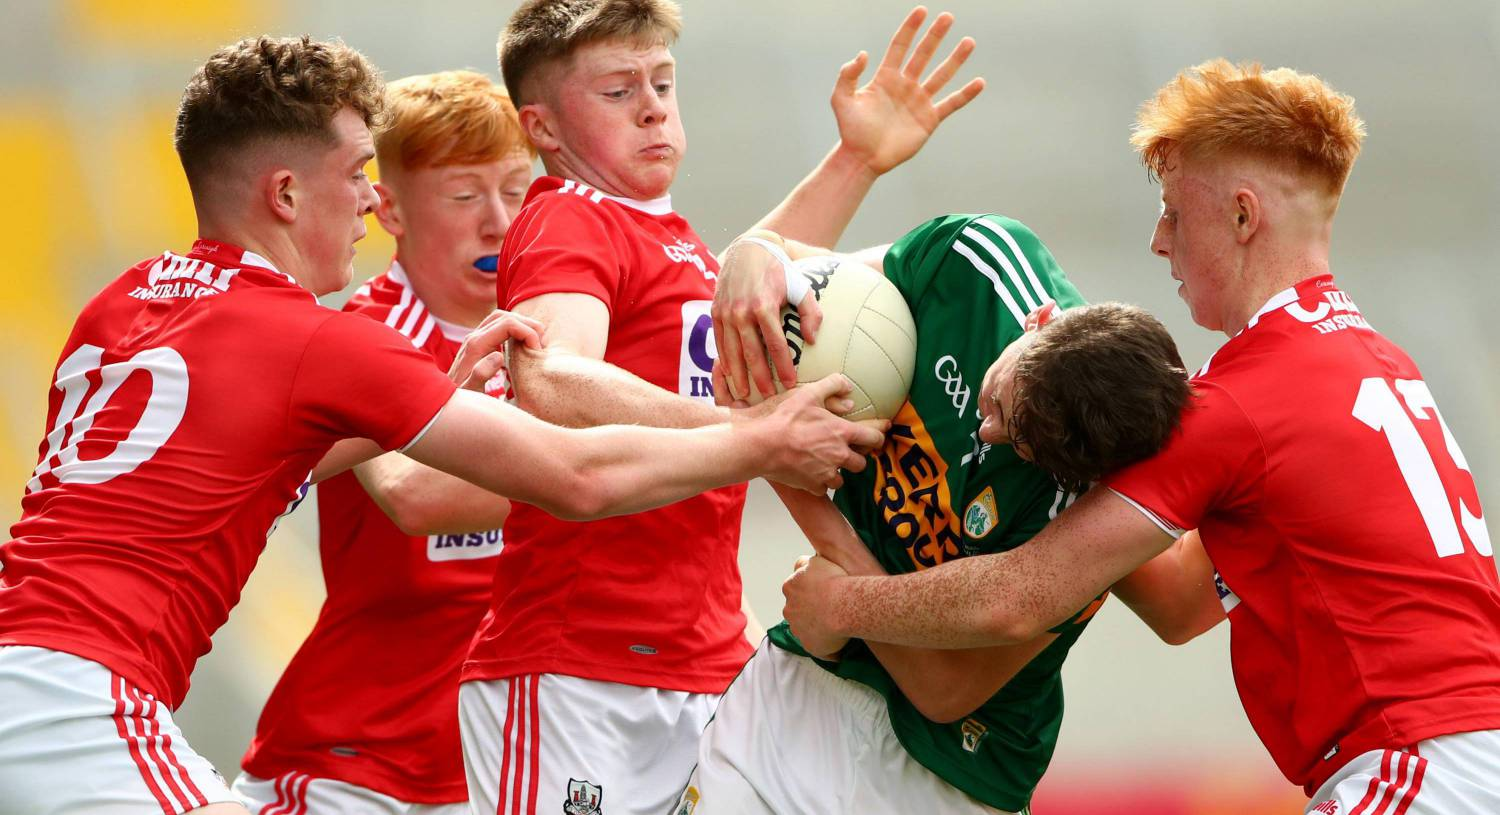 All-Ireland minor champions Cork to face Kerry in winner-takes-all Munster semi-final